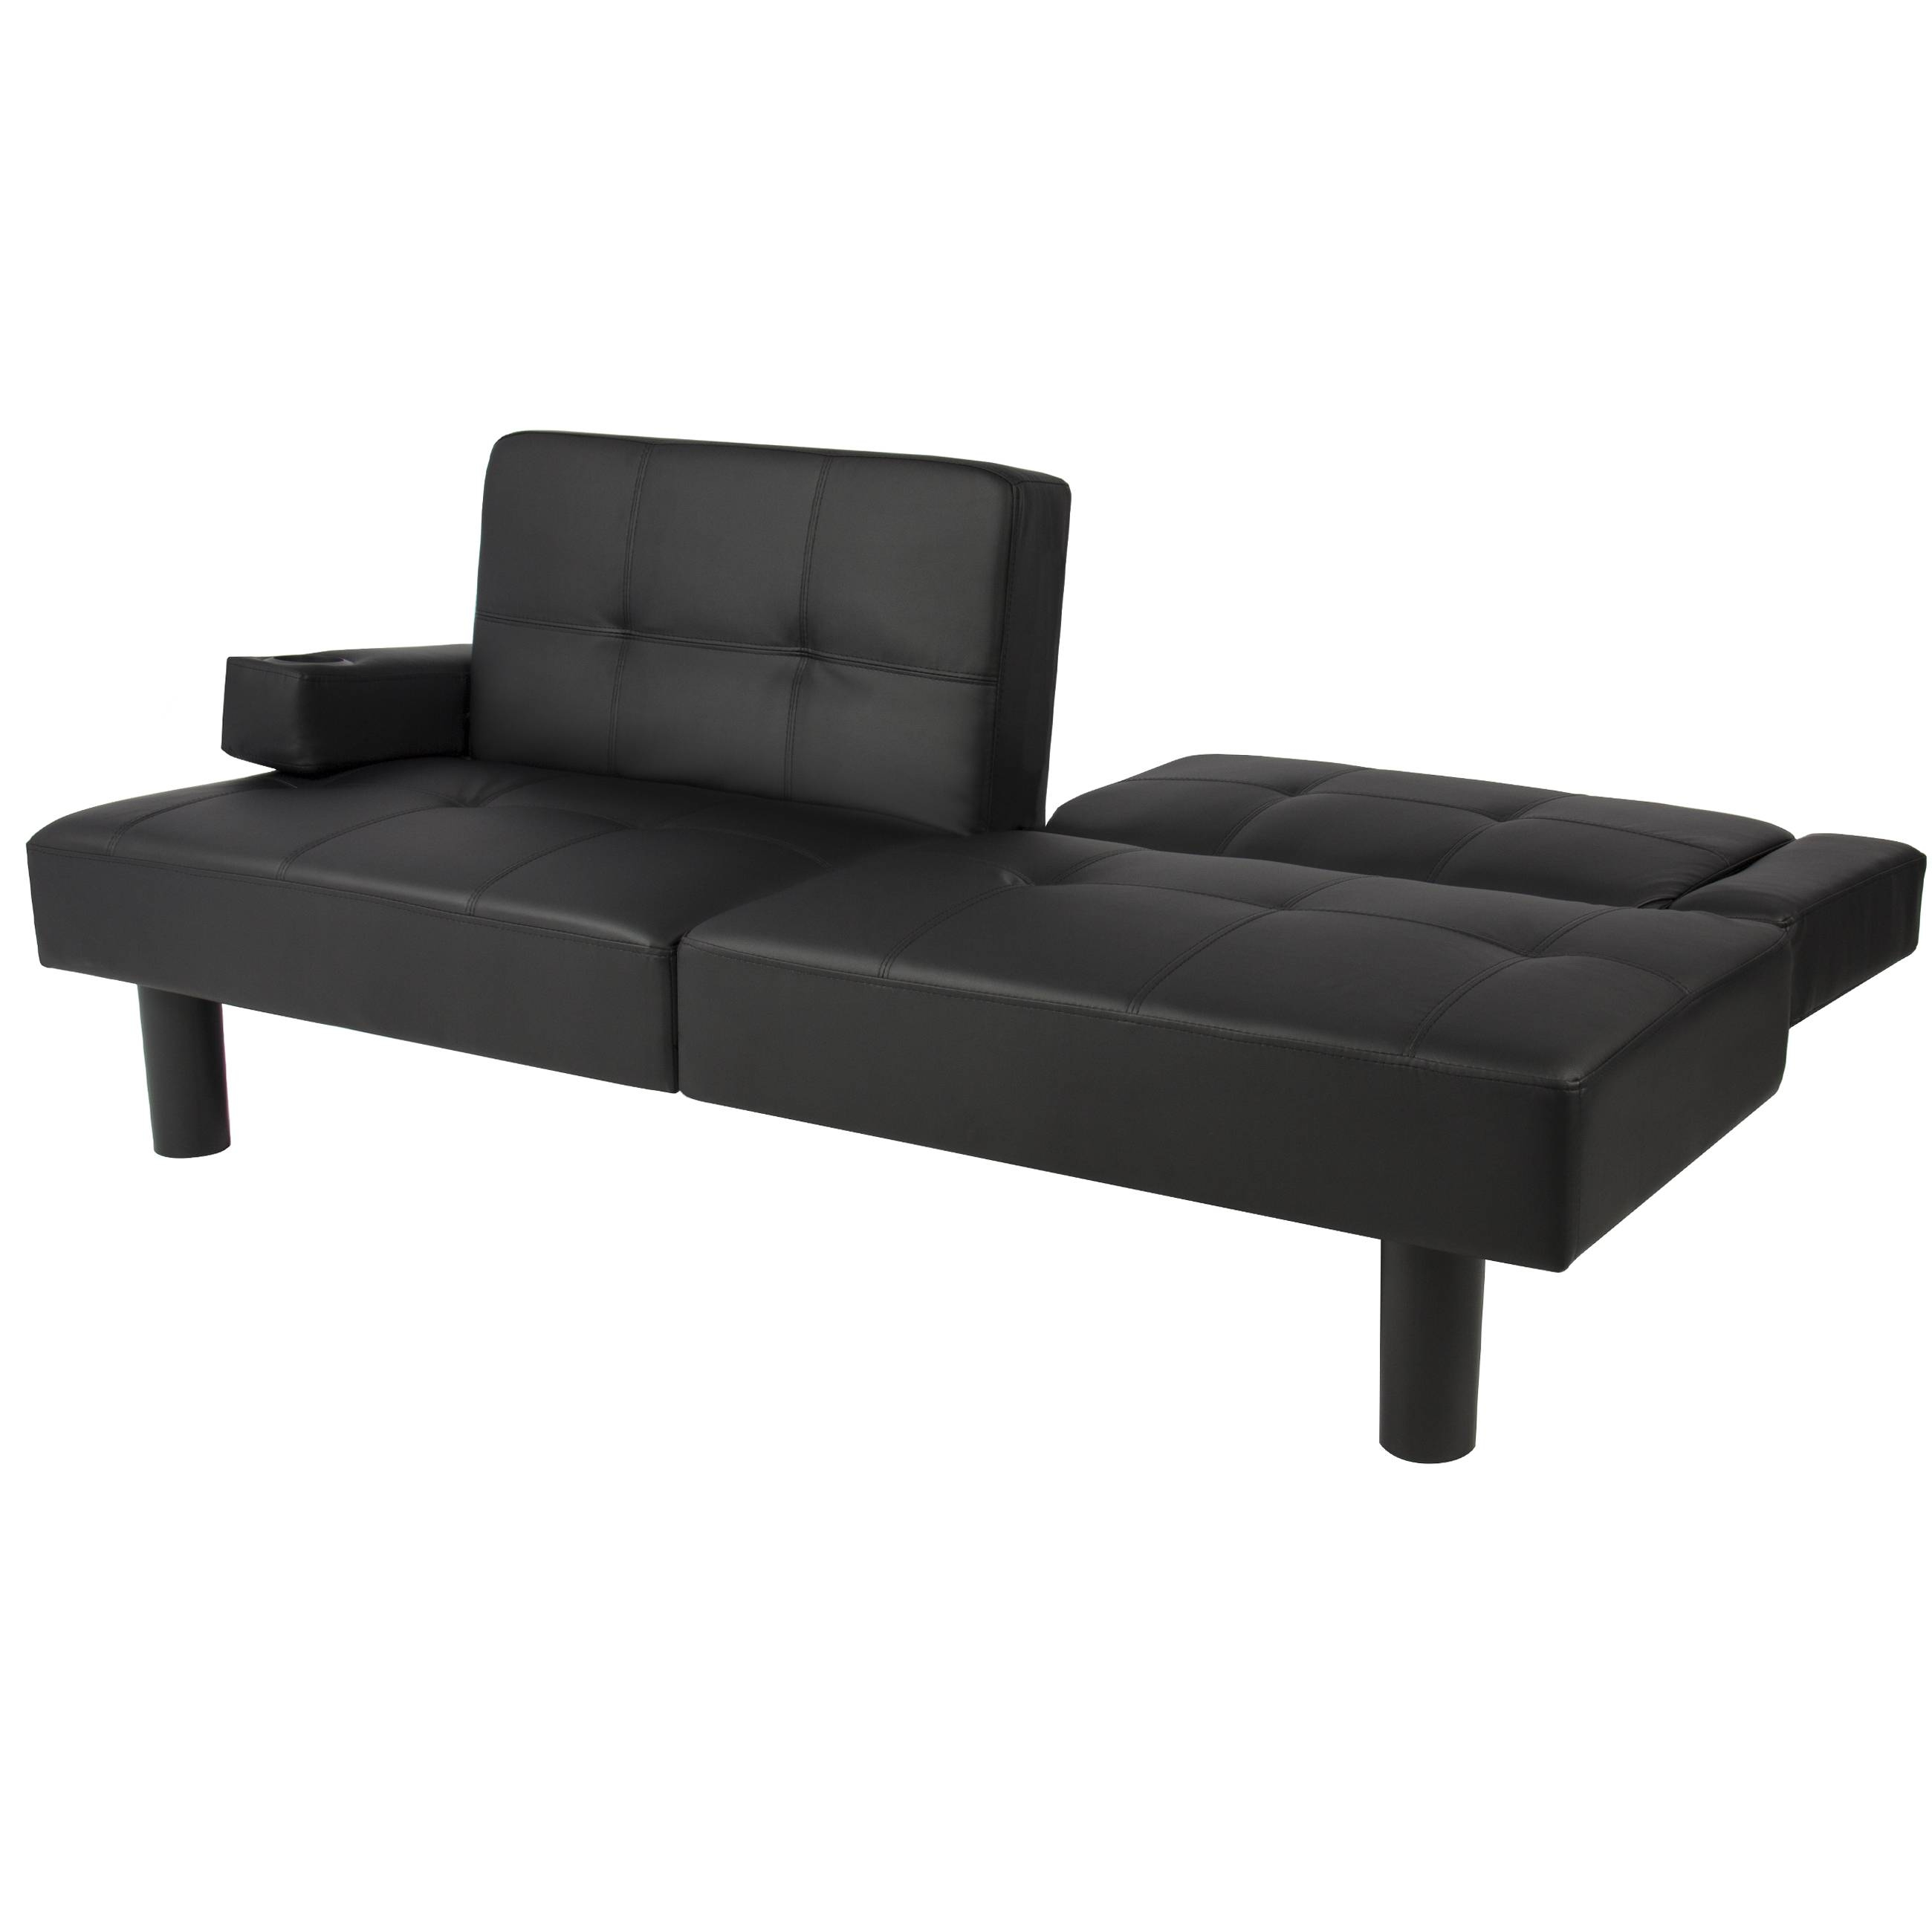 Leather Faux Fold Down Futon Sofa Bed Couch Sleeper Furniture pertaining to Small Black Futon Sofa Beds (Image 9 of 15)